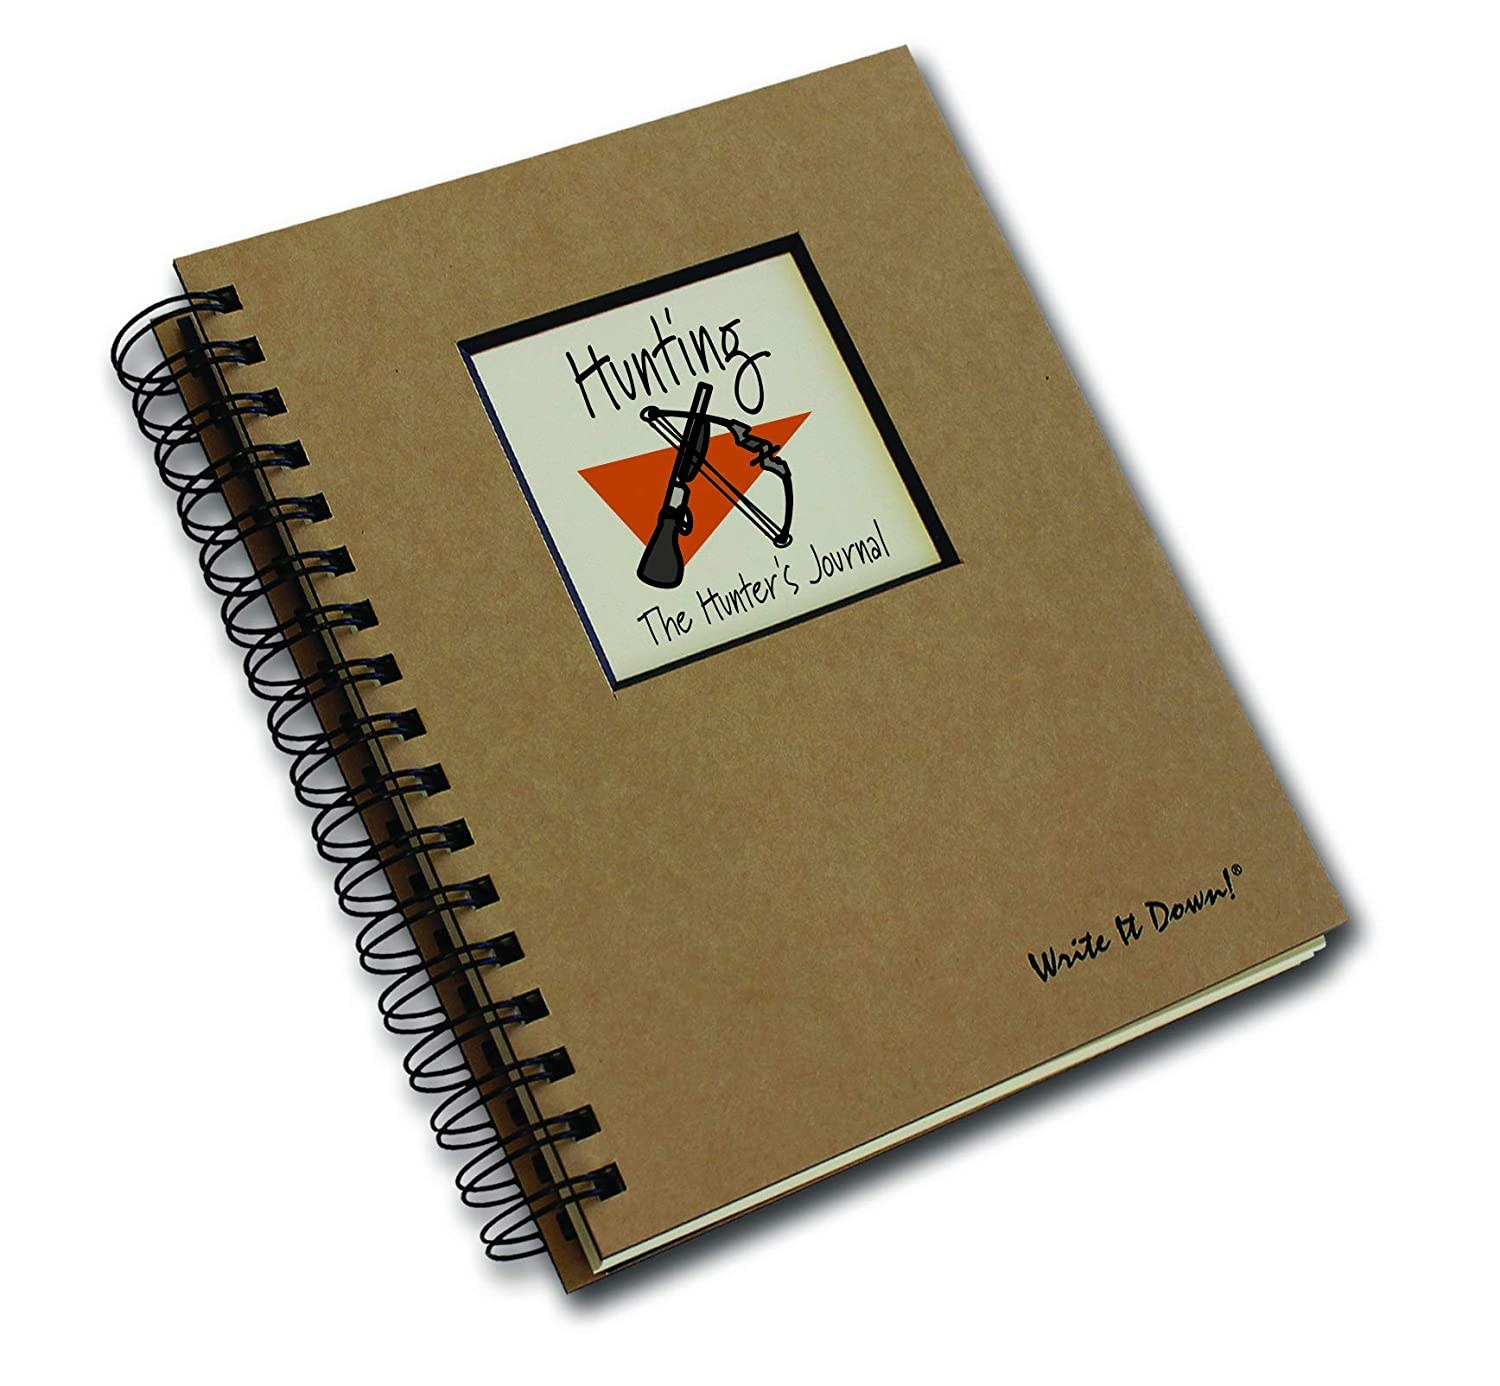 Hunting, The Hunter's Journal - Kraft Brown Hard Cover (prompts on every page, recycled paper, read and more) The Hunter' s Journal - Kraft Brown Hard Cover (prompts on every page Journals Unlimited JU-12